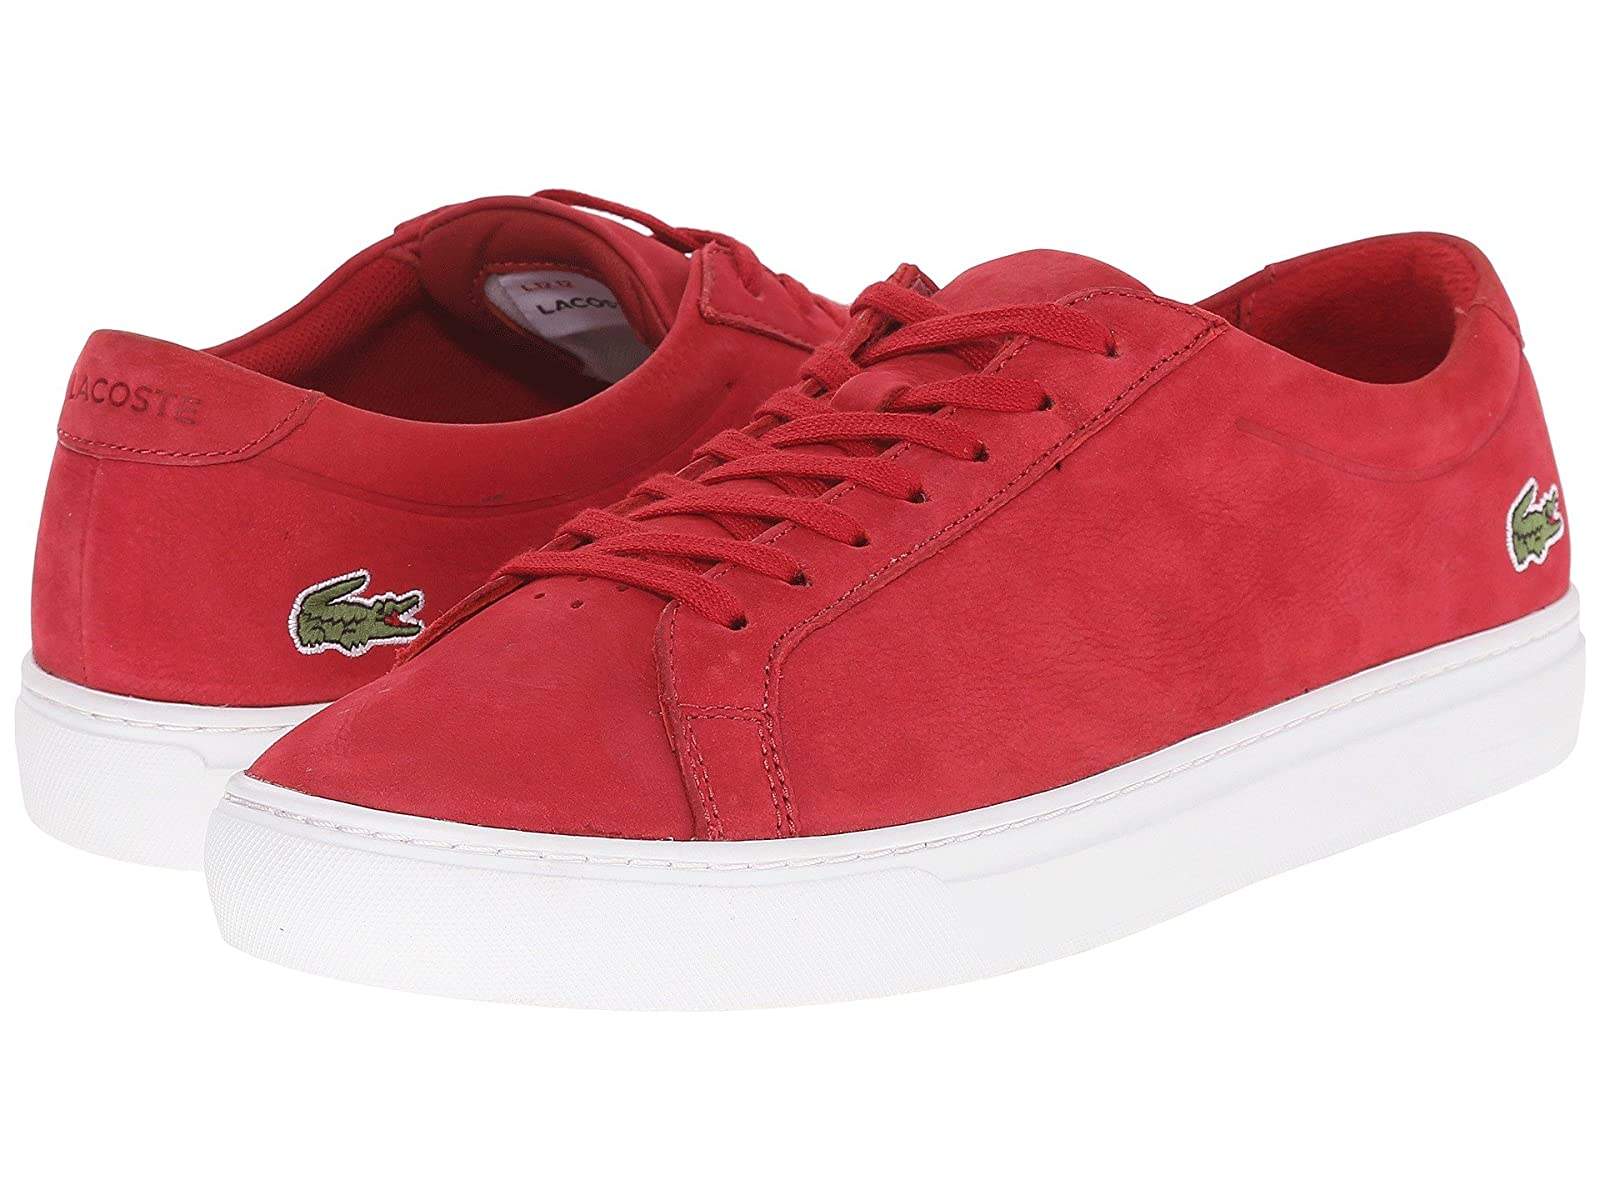 Lacoste L.12.12 216 1Cheap and distinctive eye-catching shoes